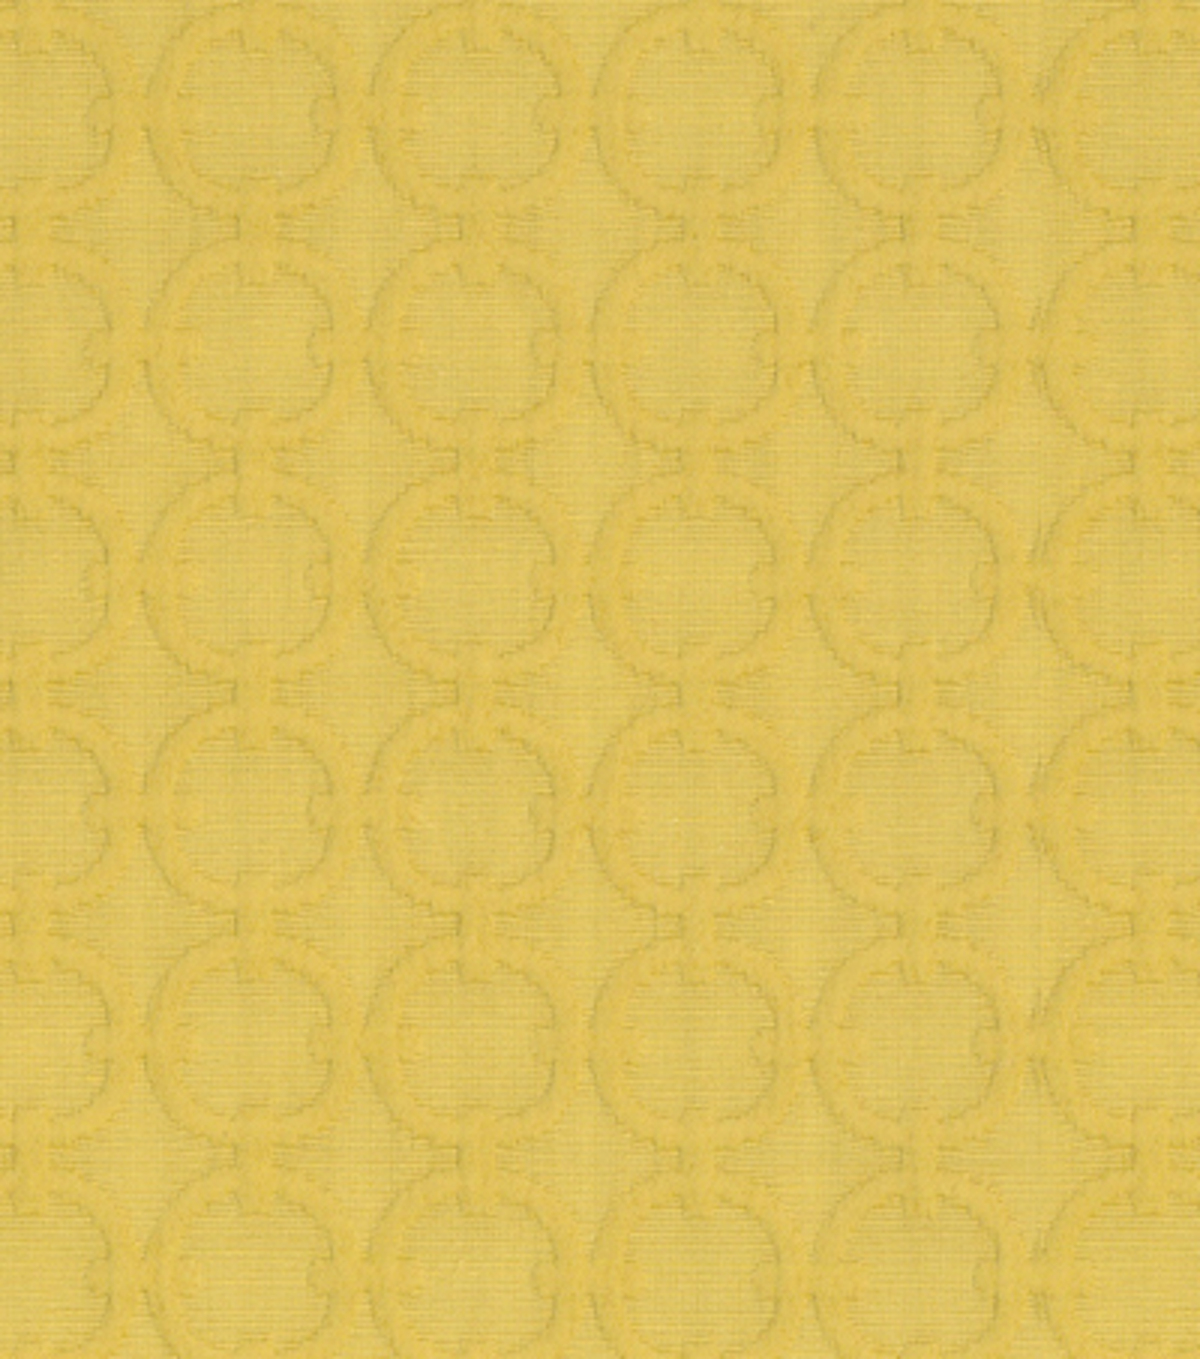 Home Decor 8\u0022x8\u0022 Fabric Swatch-Upholstery Fabric-Waverly Full Circle/Sunburst